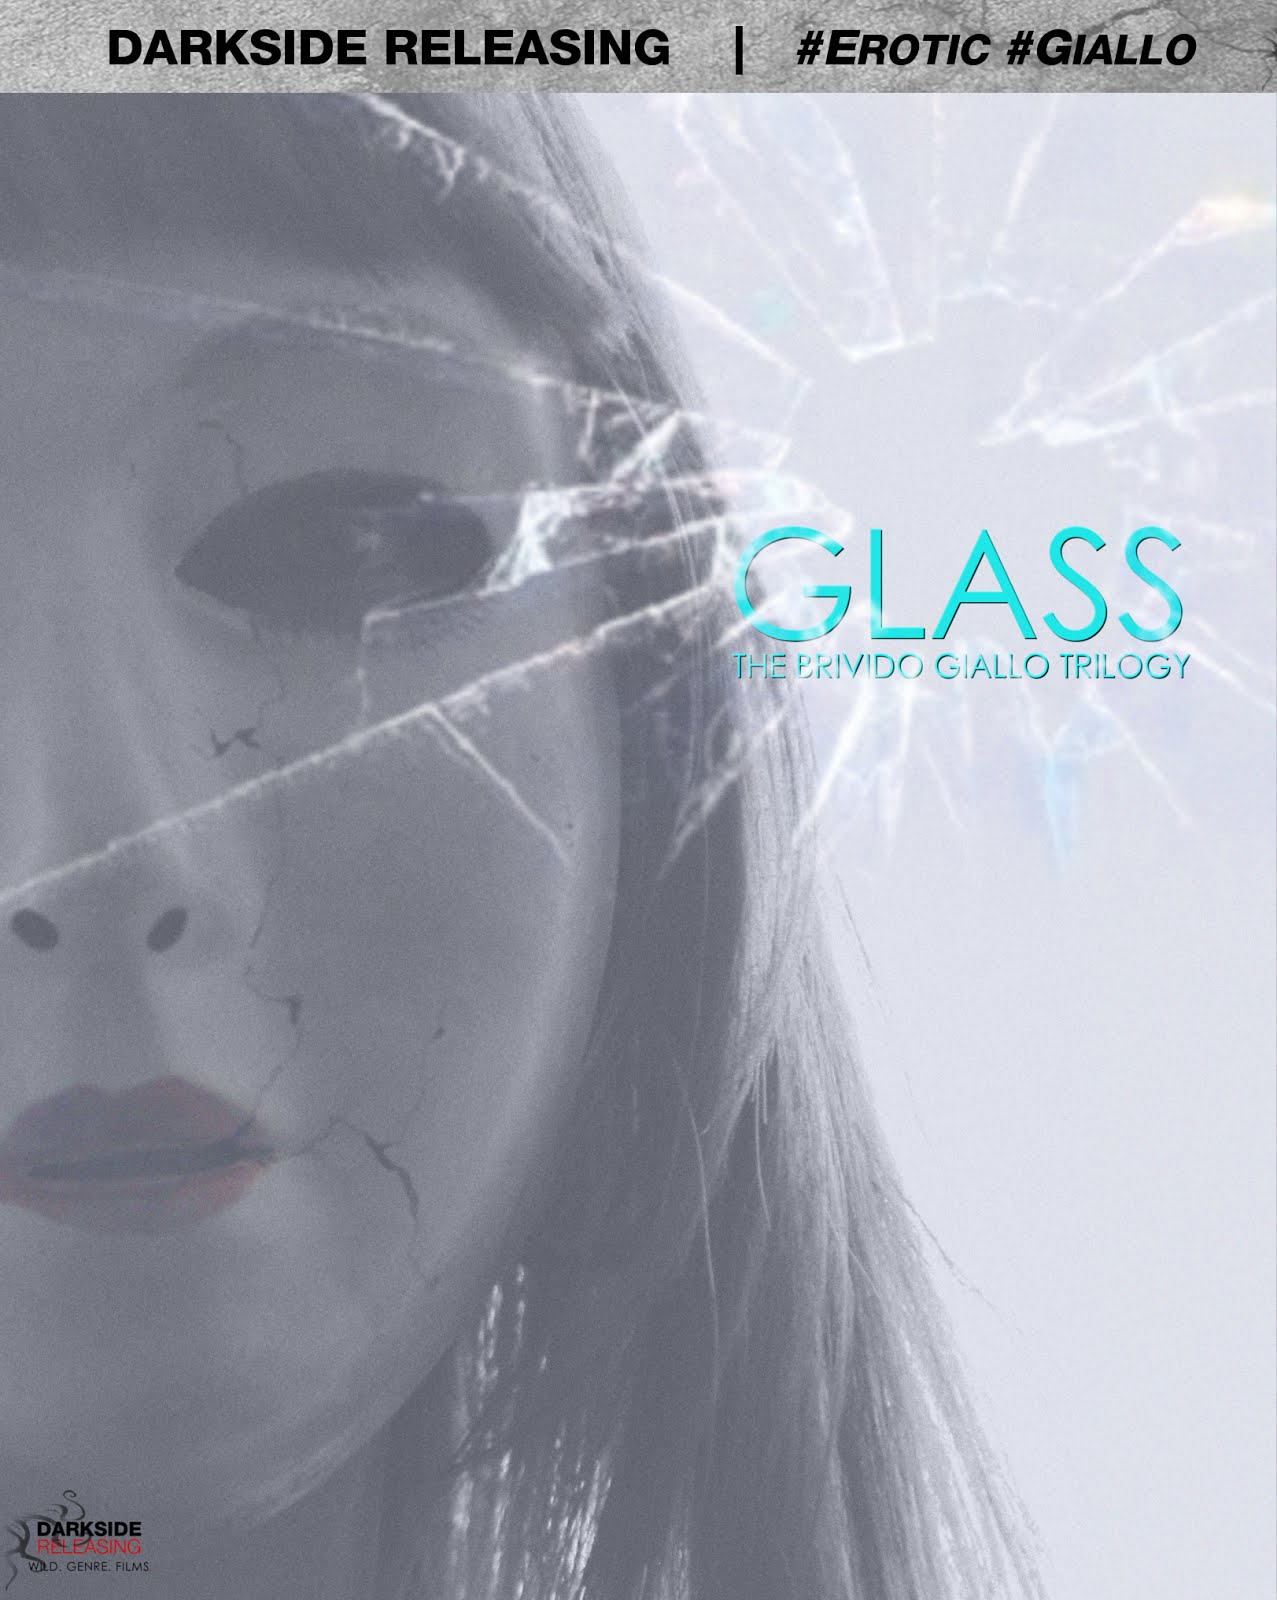 GLASS - Available now on Blu-ray!